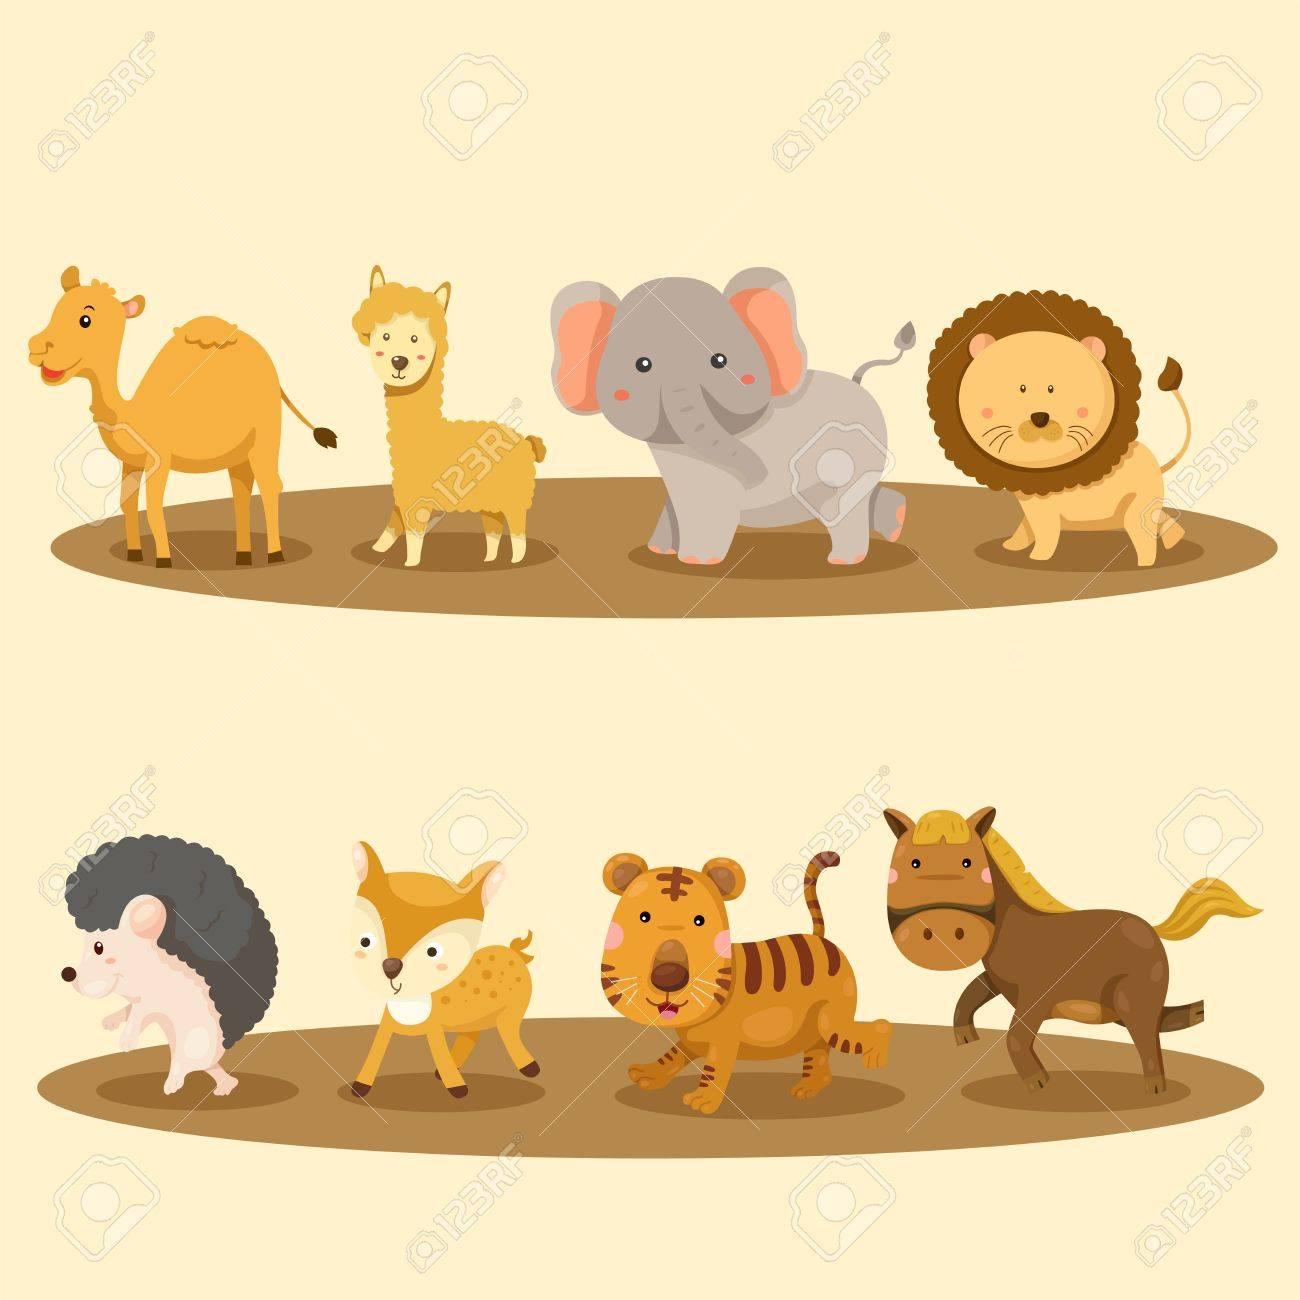 illustrator of zoo animals royalty free cliparts vectors and